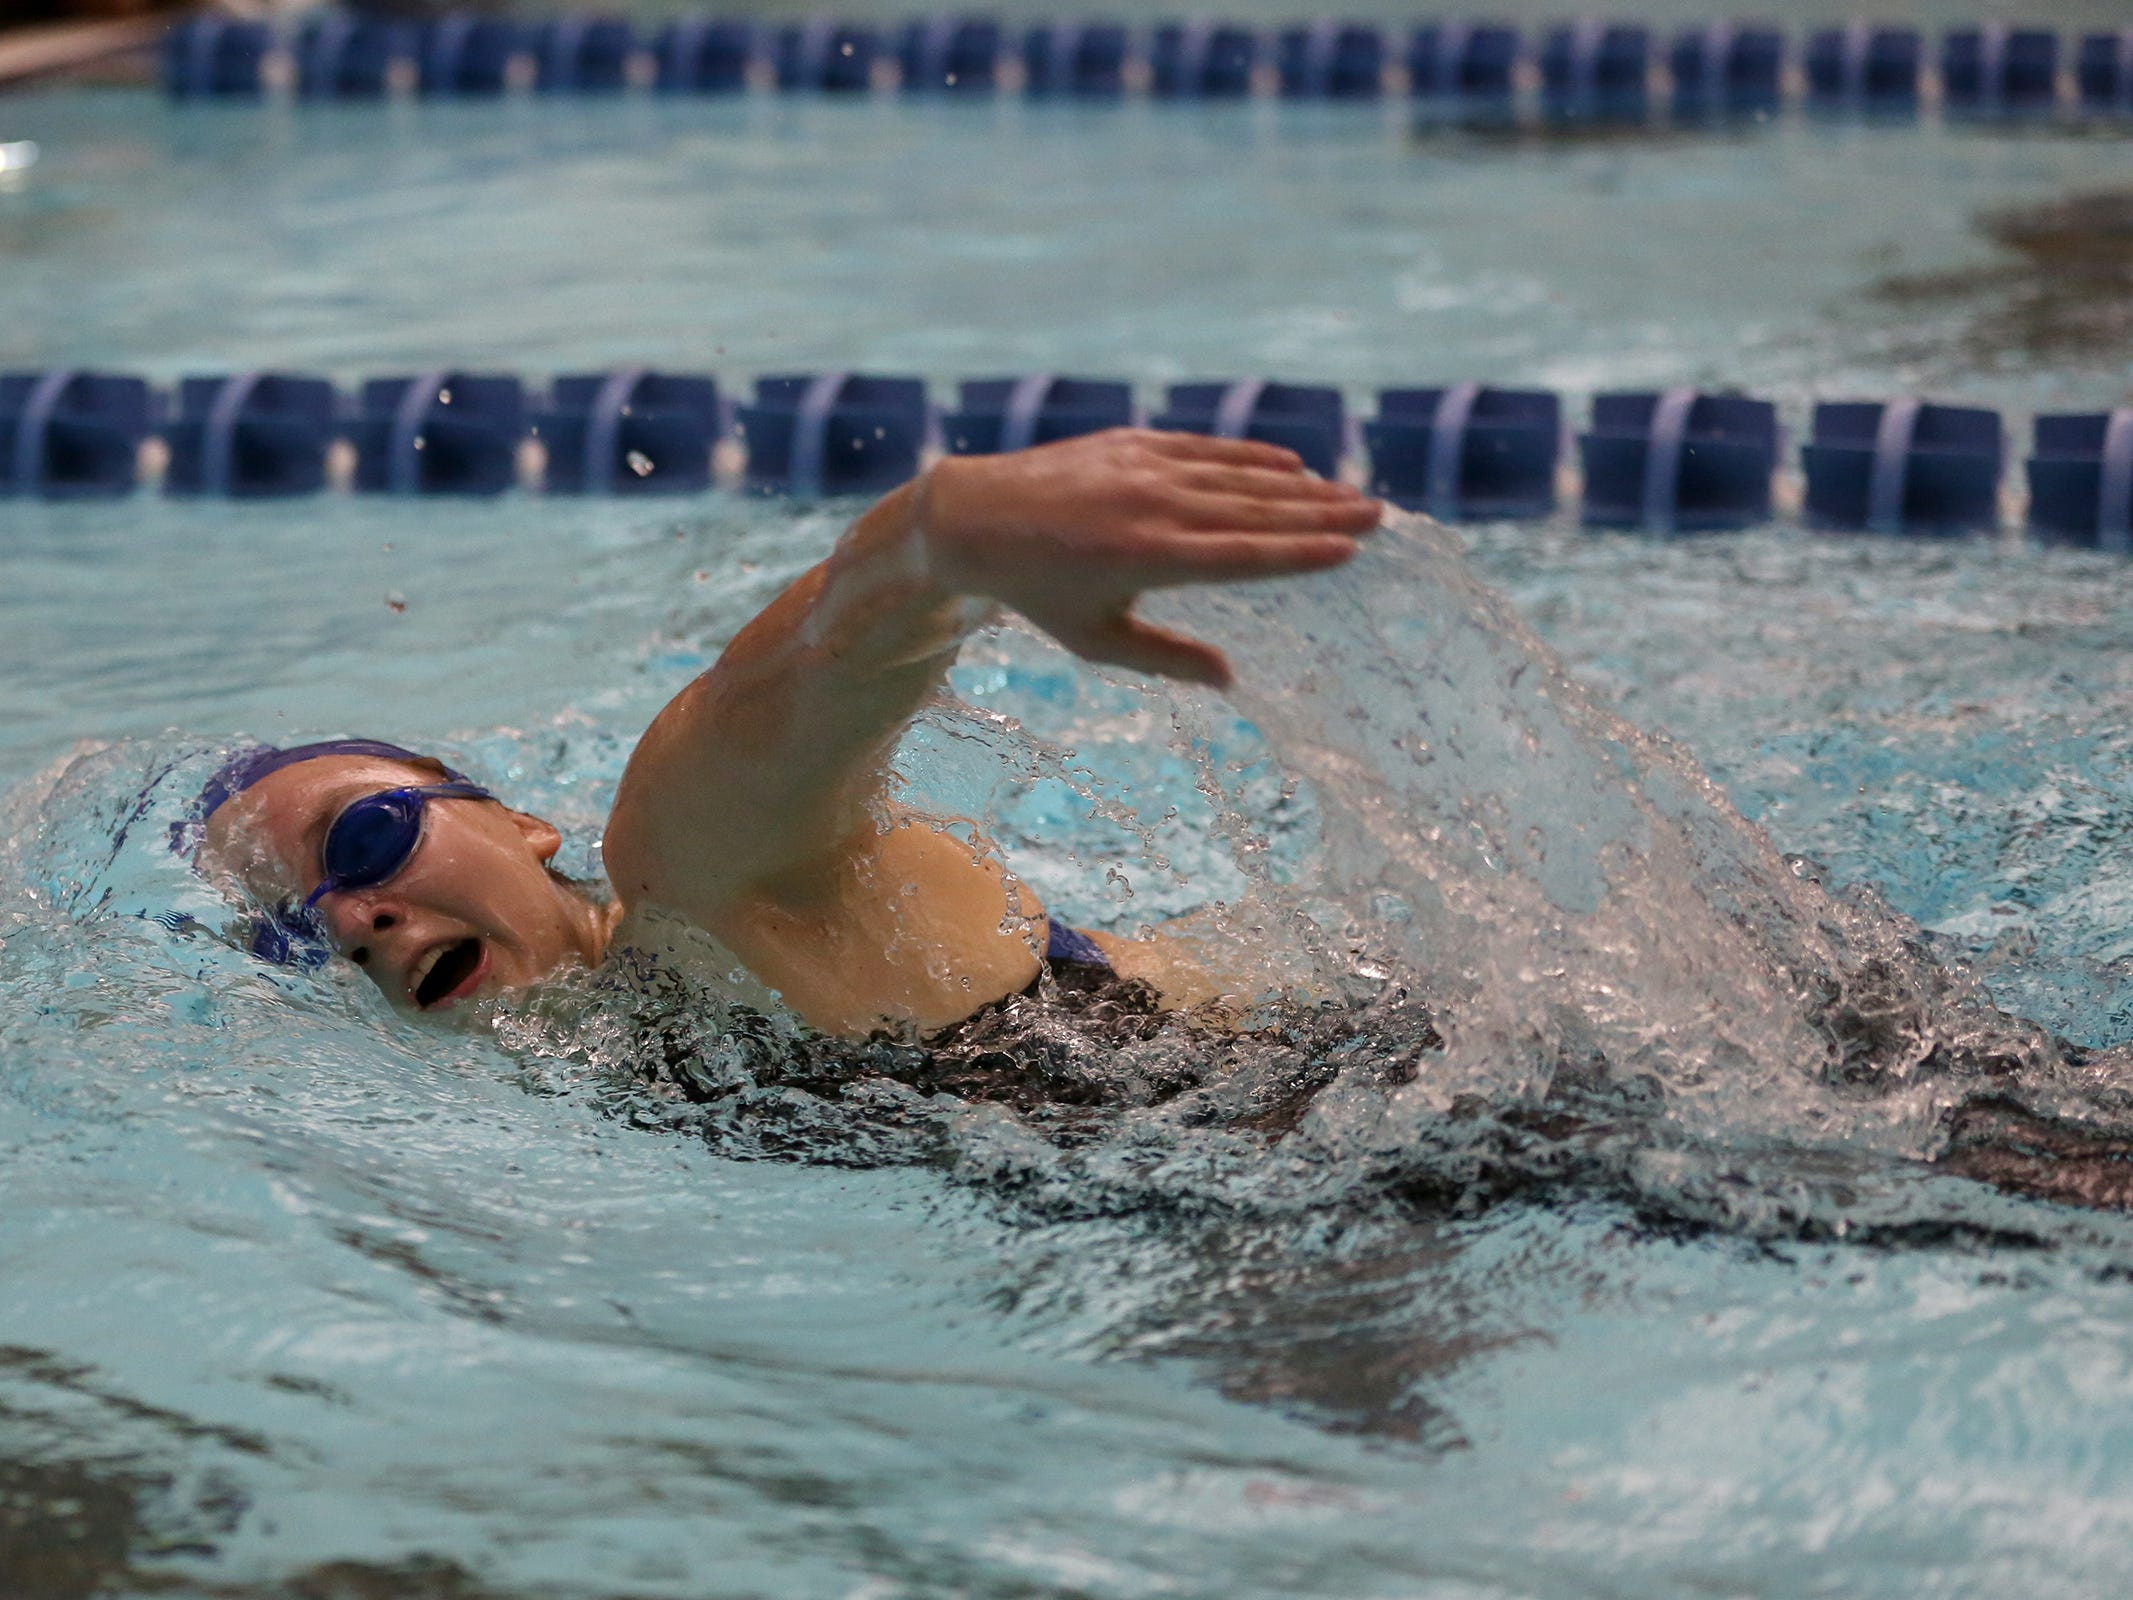 South Salem senior Julia Prange competes in the girls 500-yard freestyle at the OSAA 6A Mountain Valley Conference swimming championships at the Kroc Center in Salem, Oregon on Friday, Feb. 8, 2019.